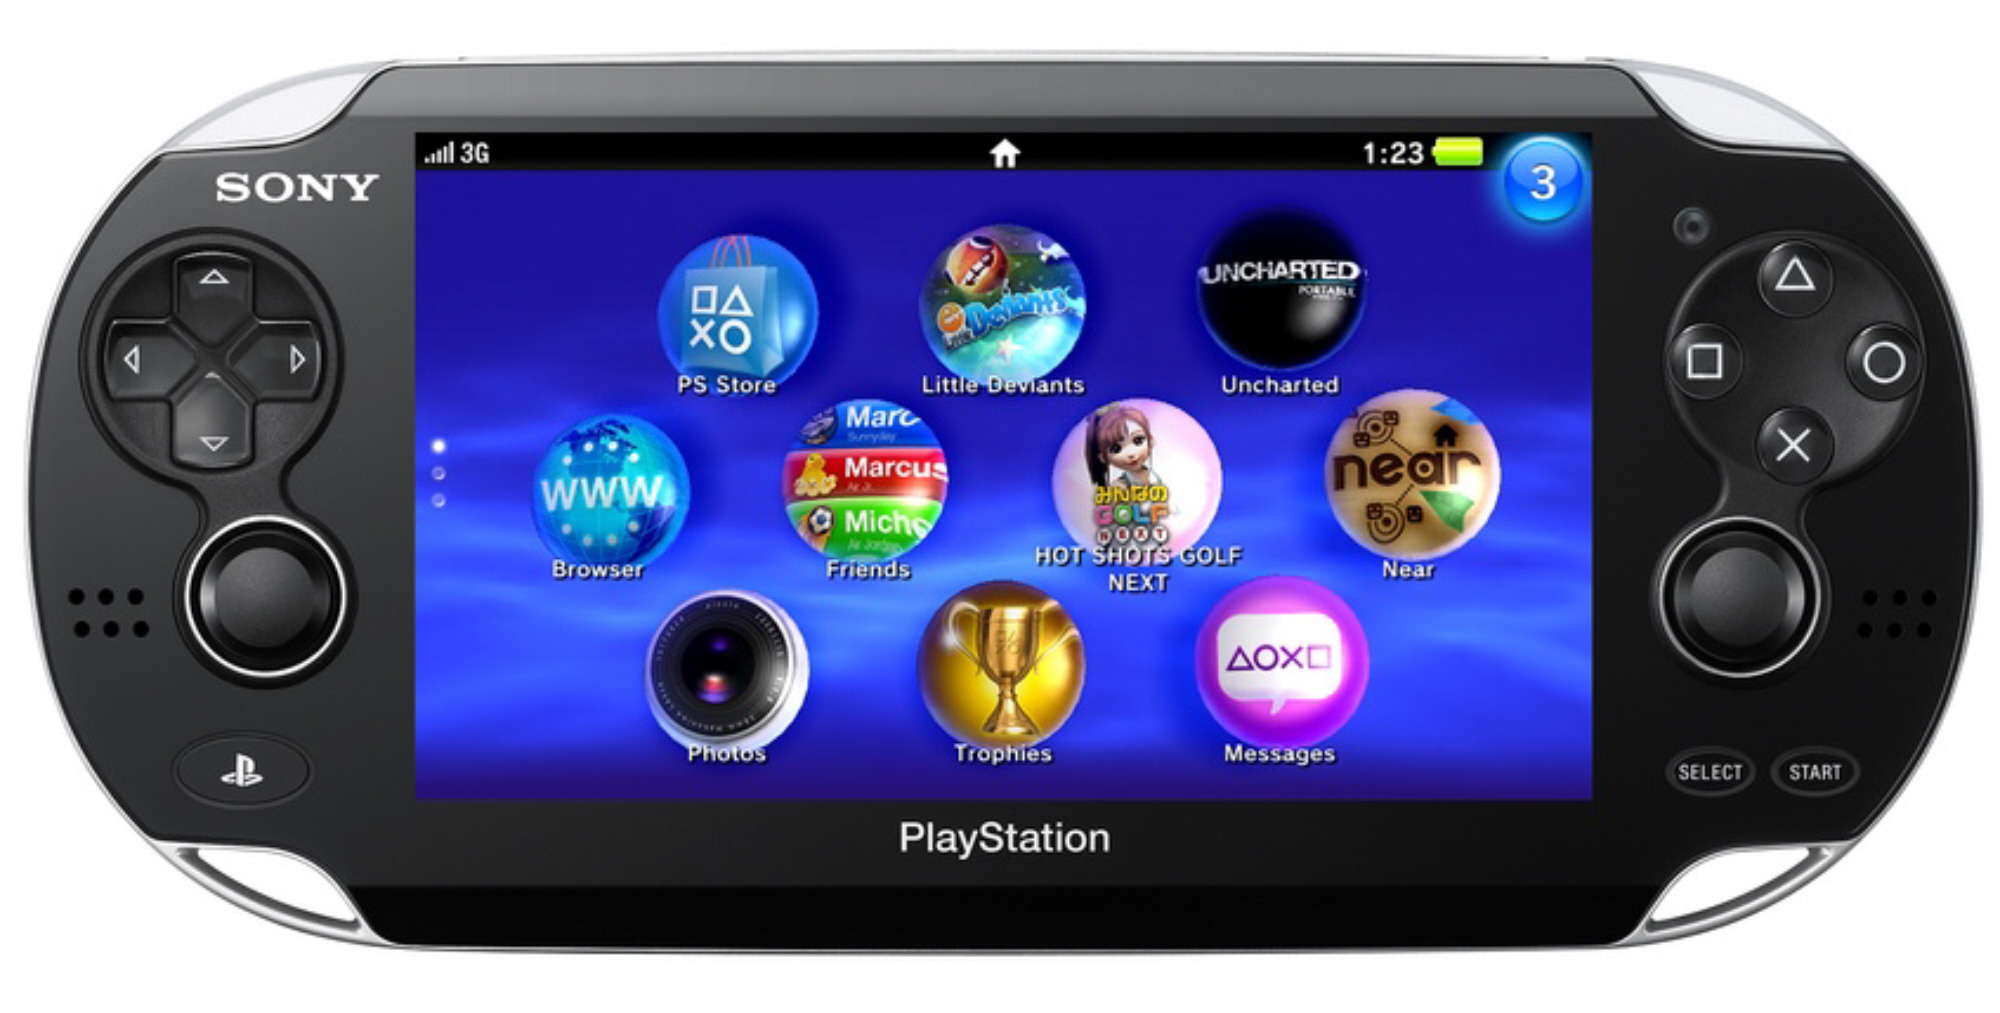 Sony Ps Vita Games : How to delete a psn id from pre owned ps vita and add